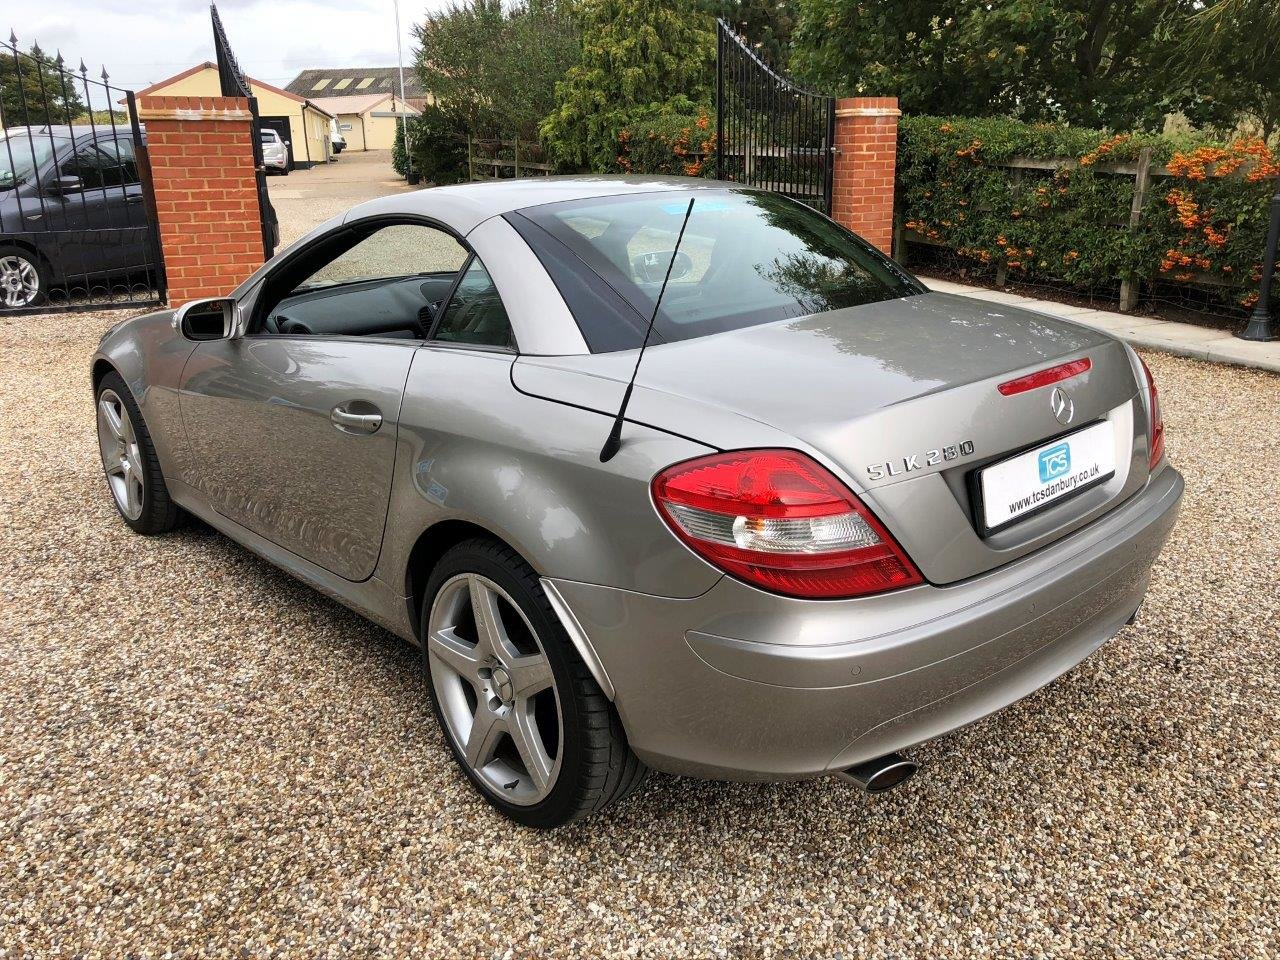 2006 Mercedes SLK280 Sport 6-Speed Manual Roadster W171 For Sale (picture 2 of 6)